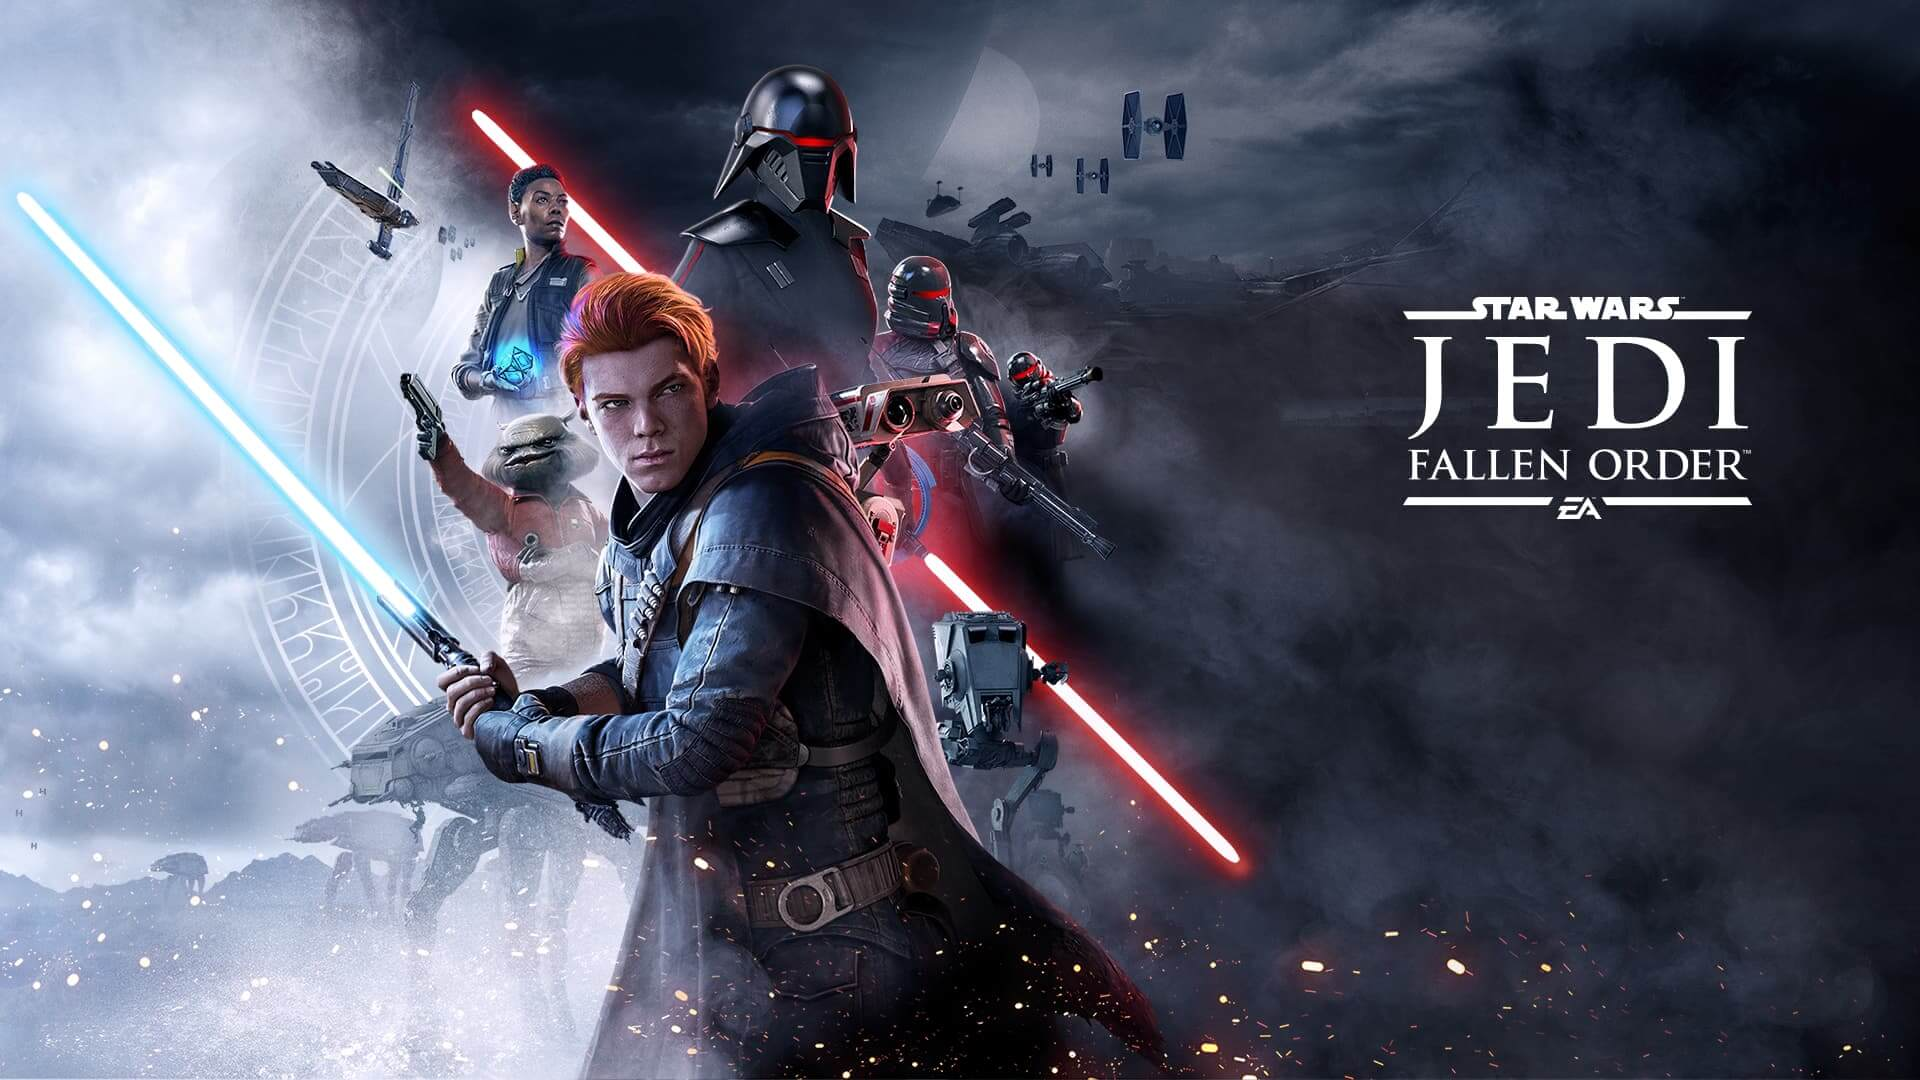 EA WILL Make More Single-Player Star Wars Games